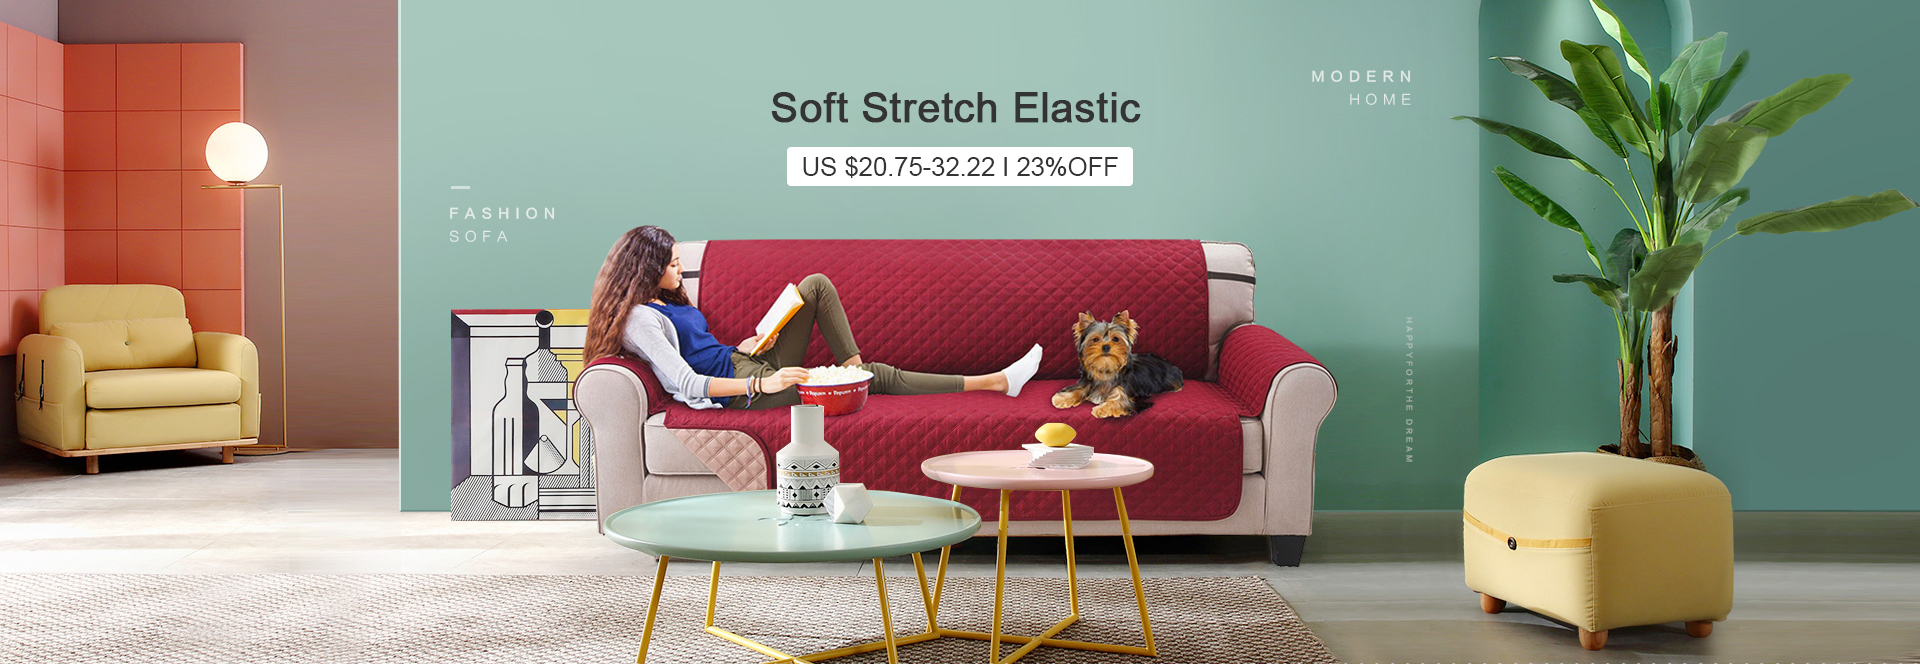 Sitzsofa Küche Smelov U Life Store Small Orders Online Store Hot Selling And